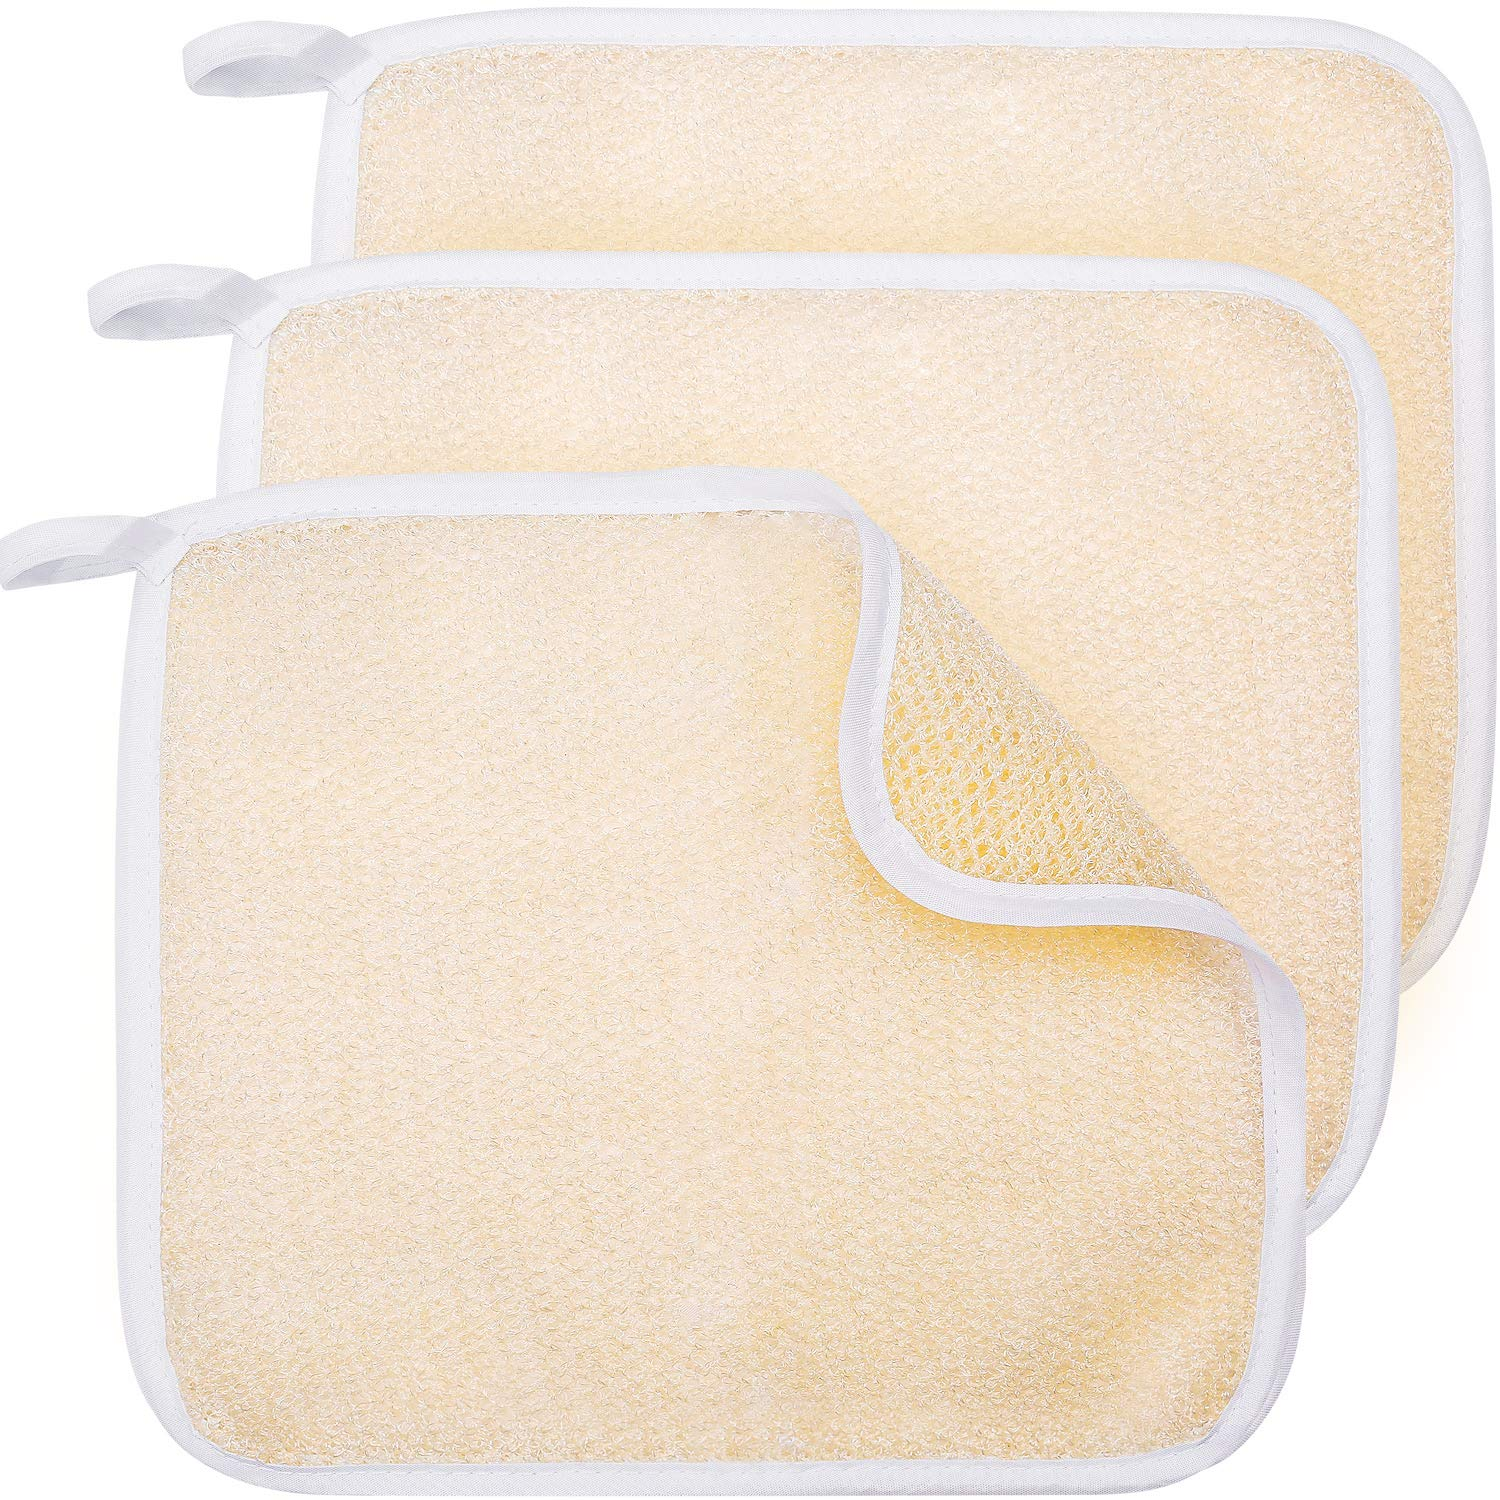 Tatuo Exfoliating Face and Body Wash Cloths Set